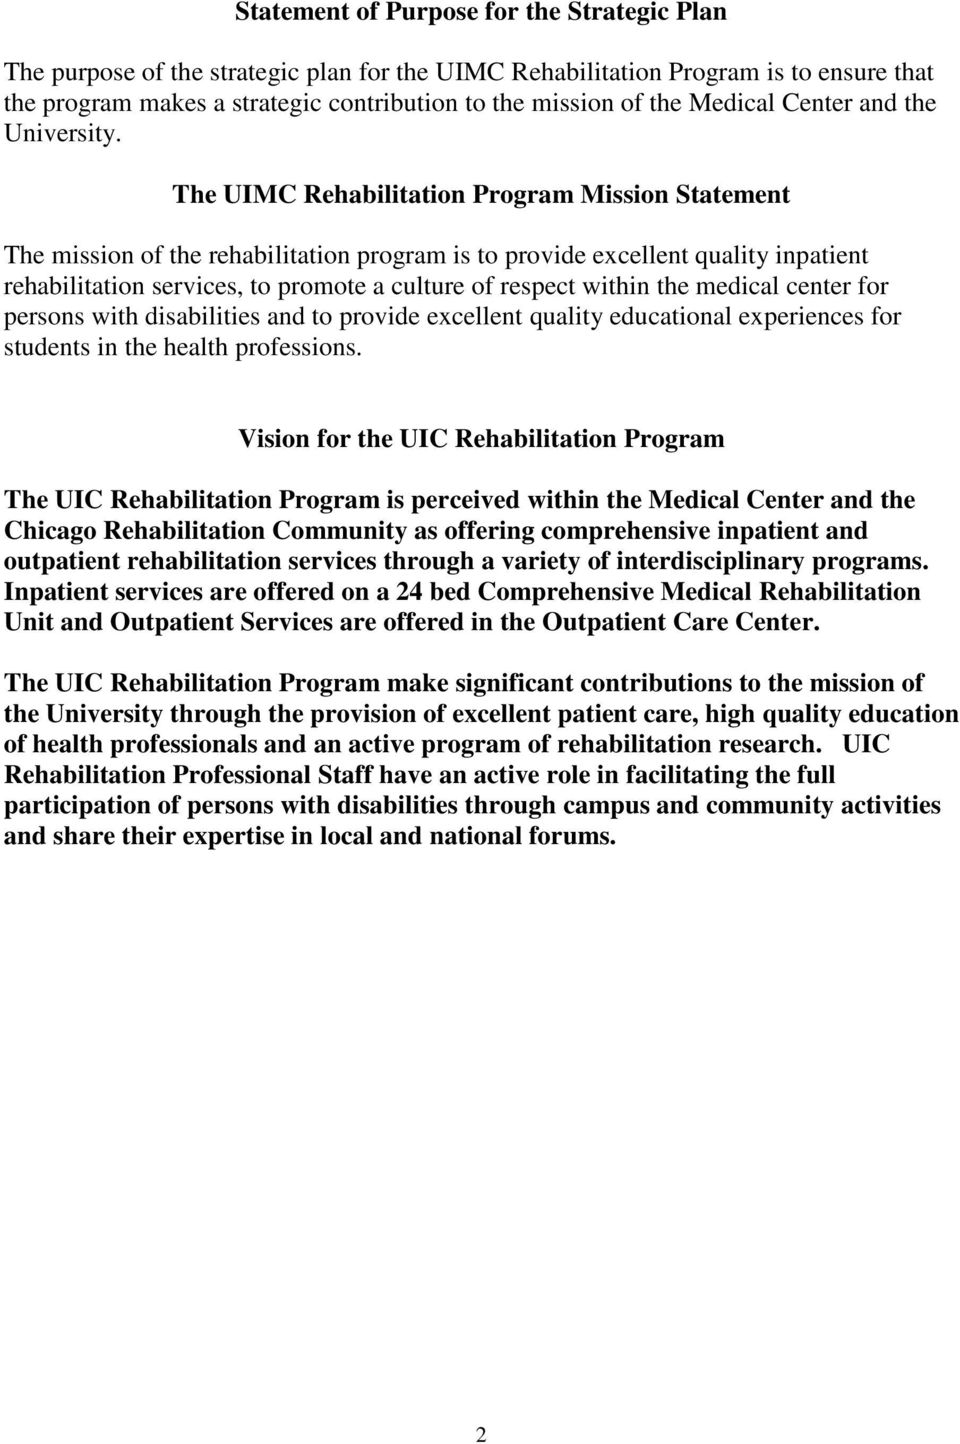 The UIMC Rehabilitation Program Mission Statement The mission of the rehabilitation program is to provide excellent quality inpatient rehabilitation services, to promote a culture of respect within